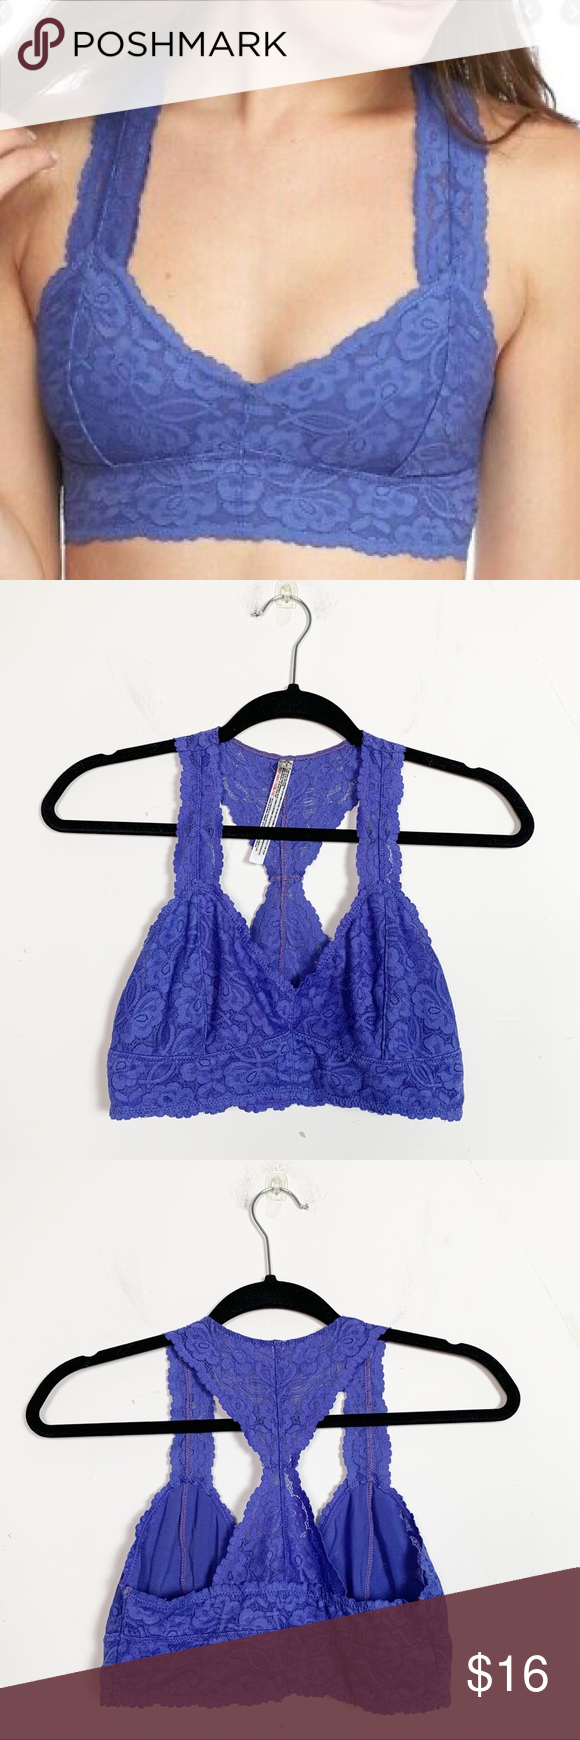 Free People Scalloped Floral Galloon Lace Racerback Bralette SZ XS//TP